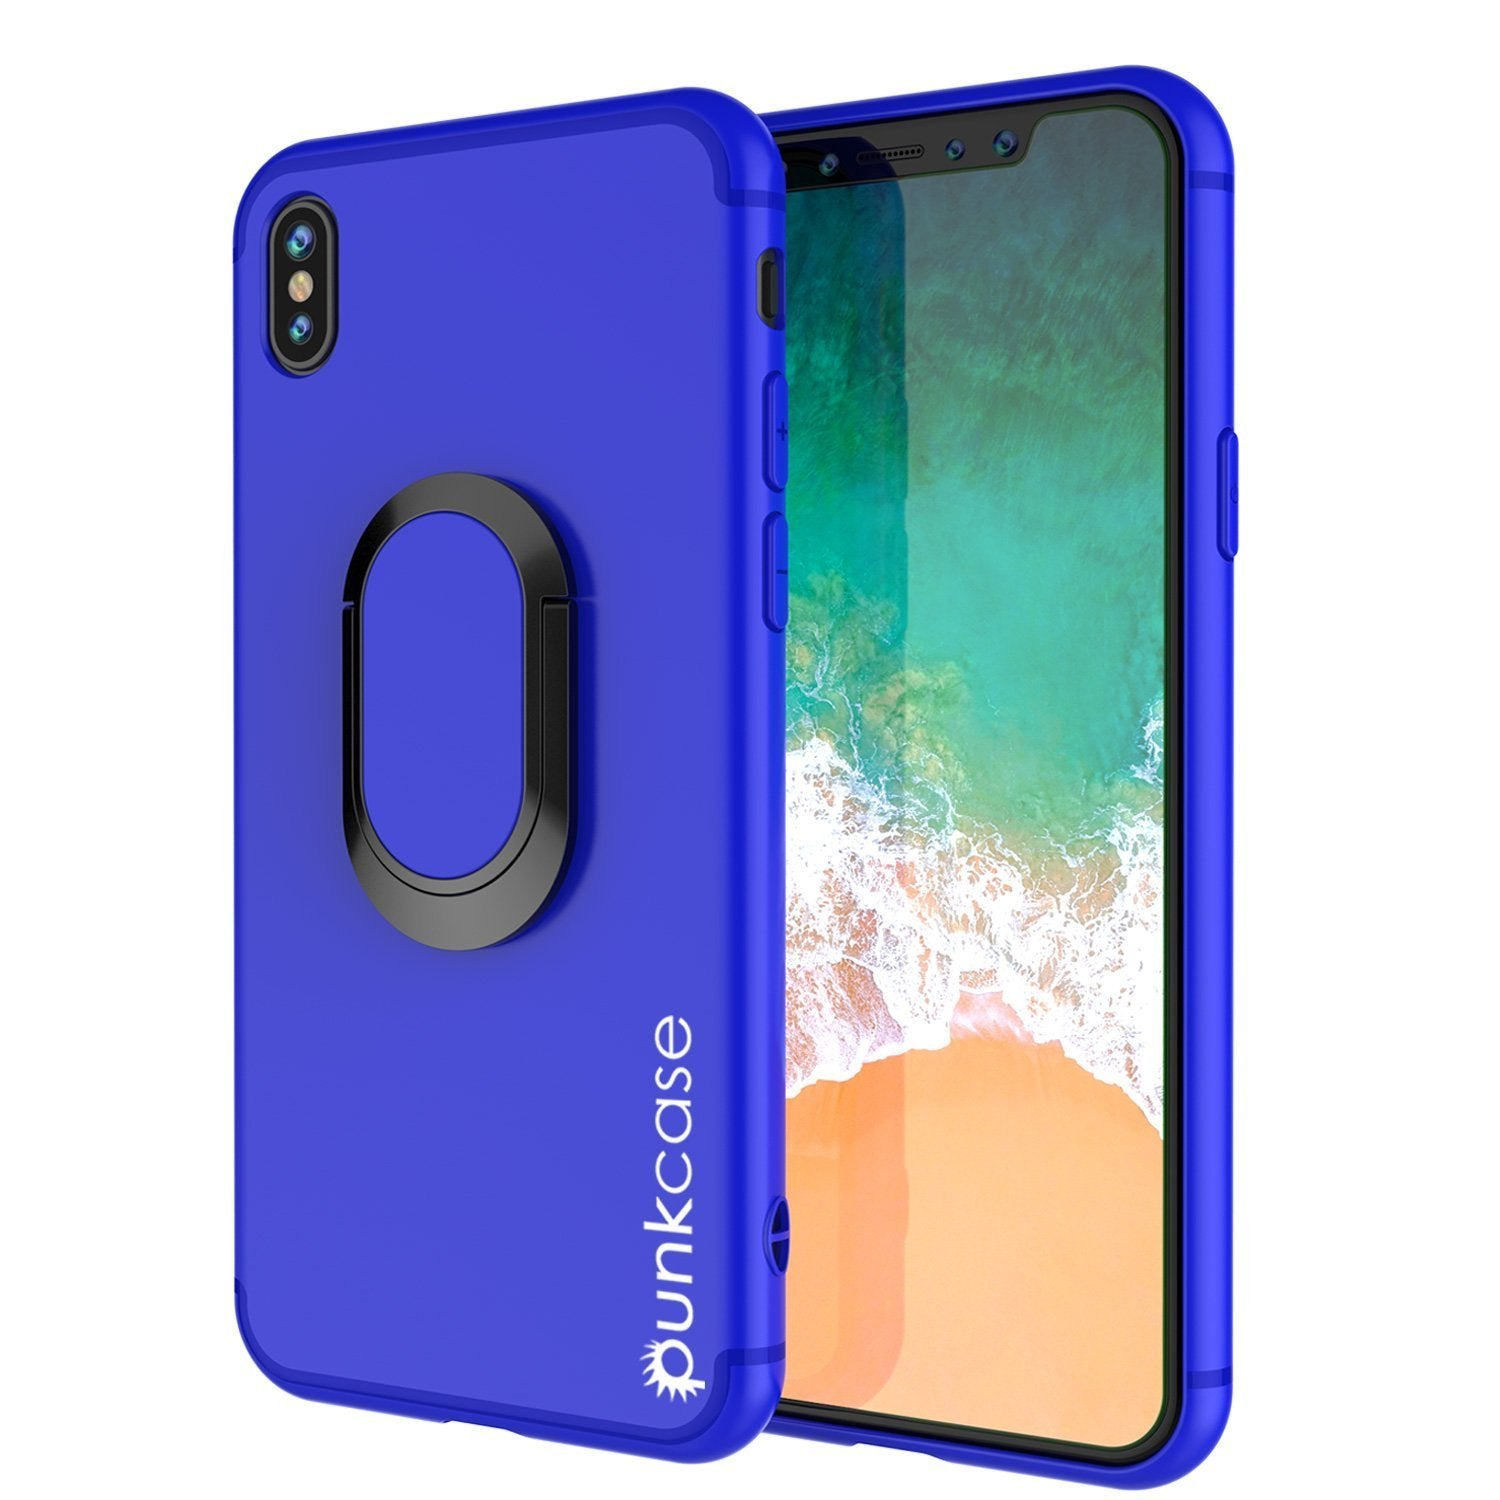 iPhone X Case, Punkcase Magnetix Protective TPU Cover W/ Kickstand, Tempered Glass Screen Protector [Blue]